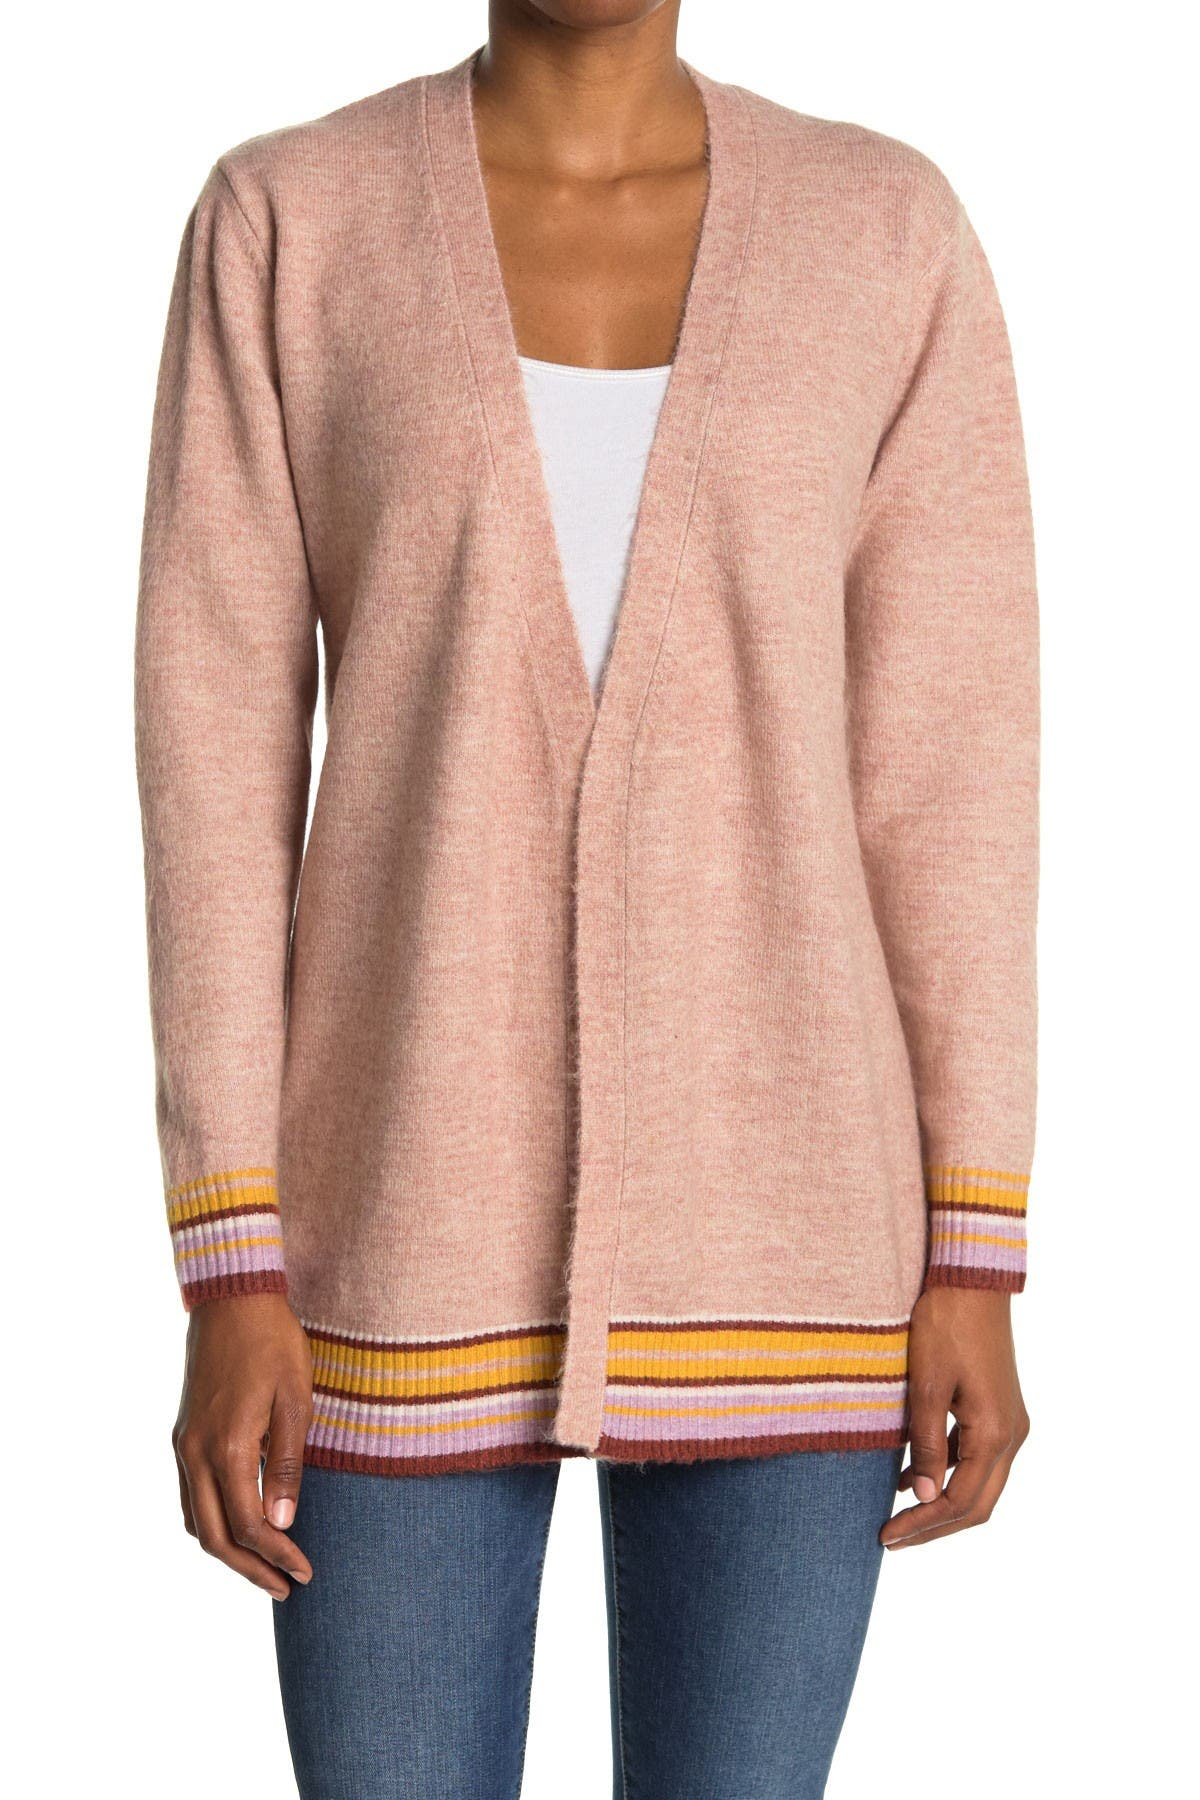 Image of Heartloom Tie Front Cardigan with Stripe